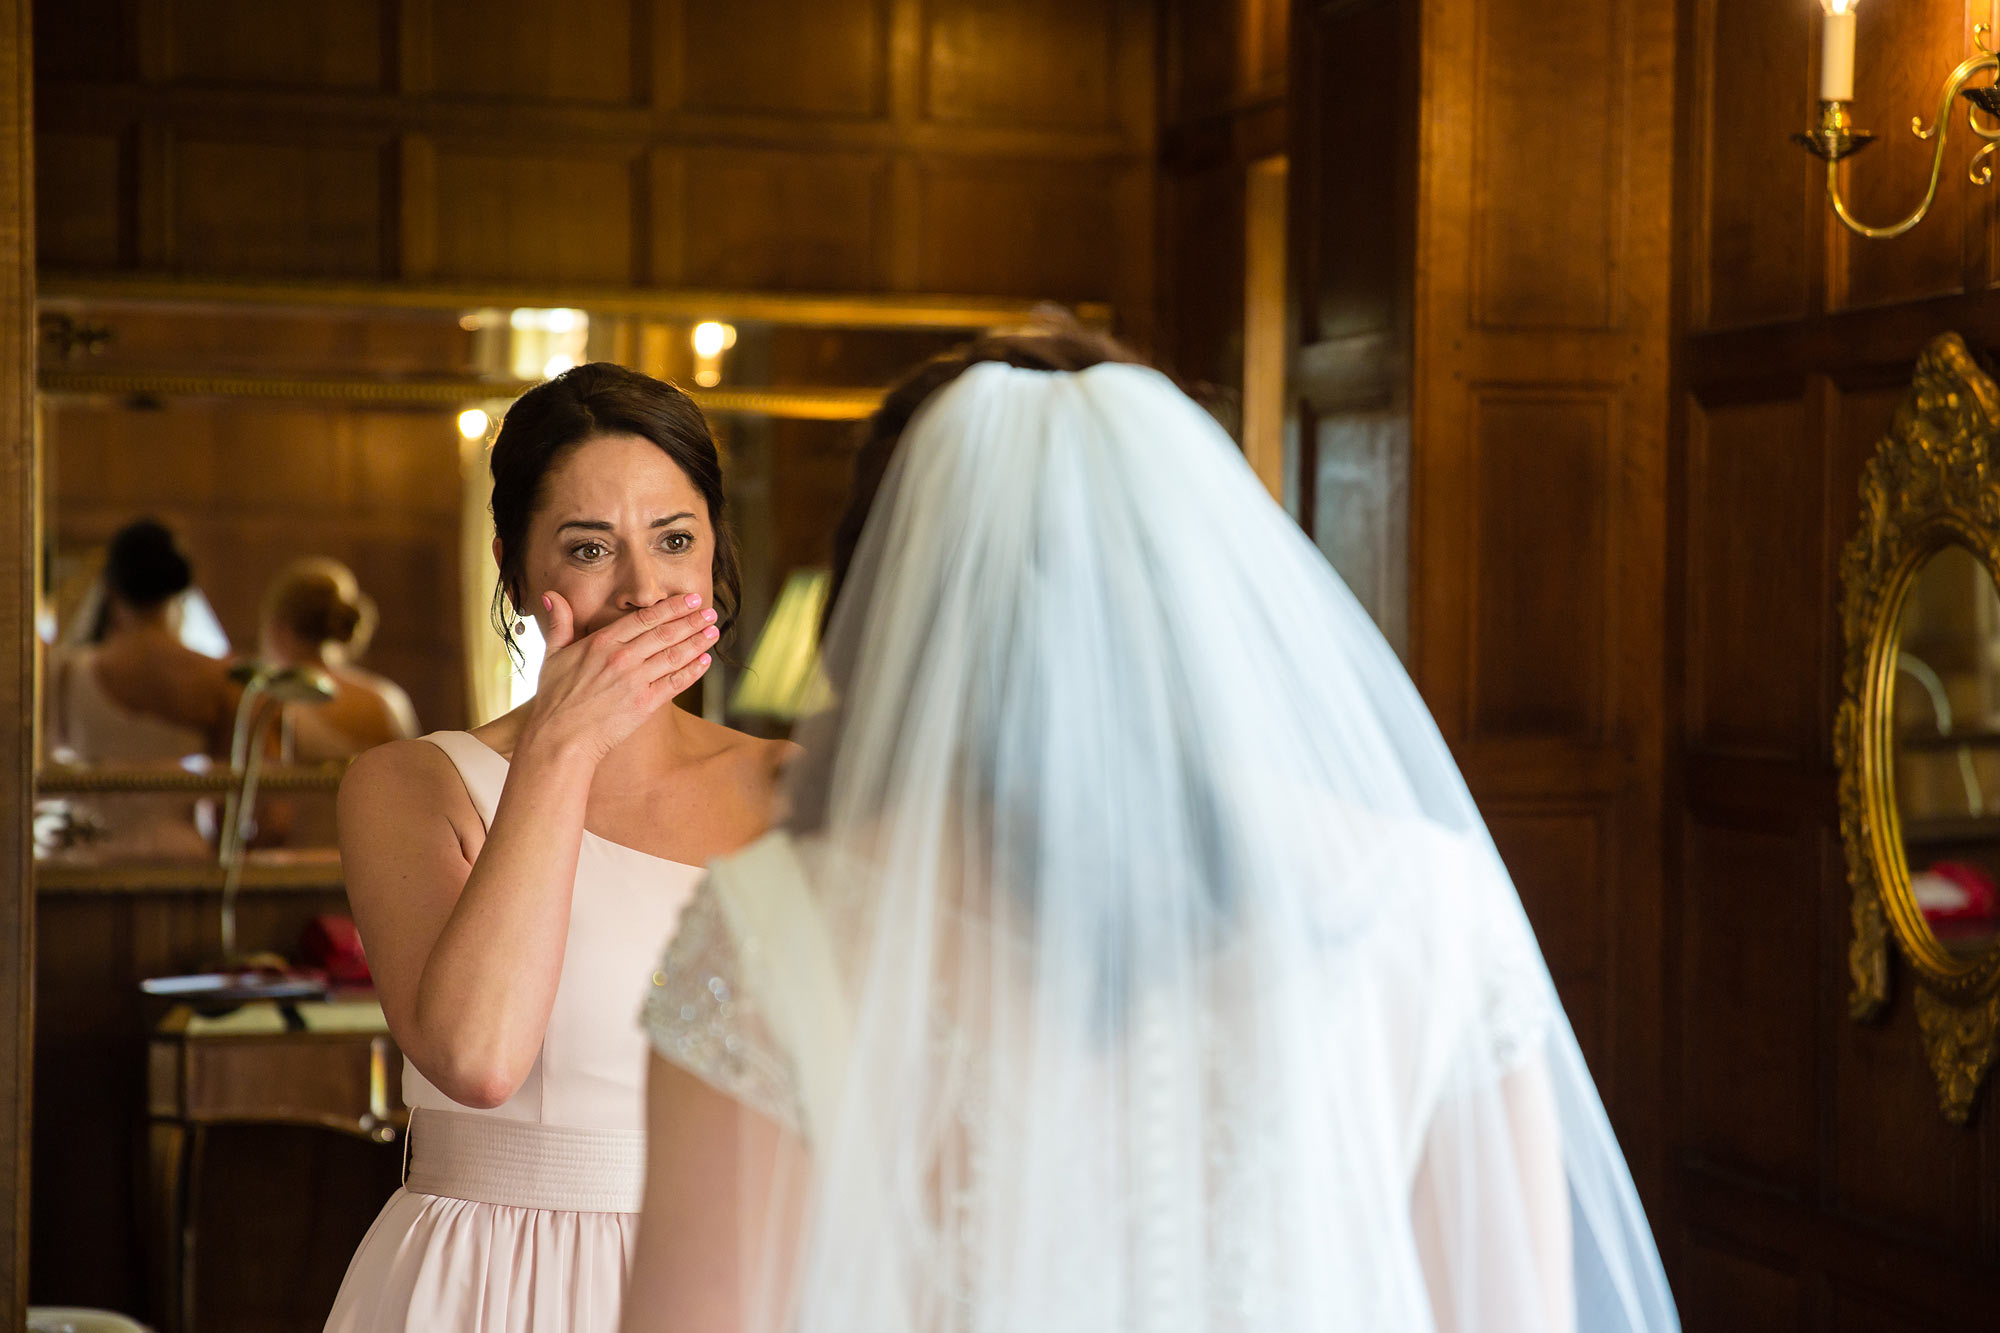 her bridesmaid covers her mouth is shock at how beautiful she looks.